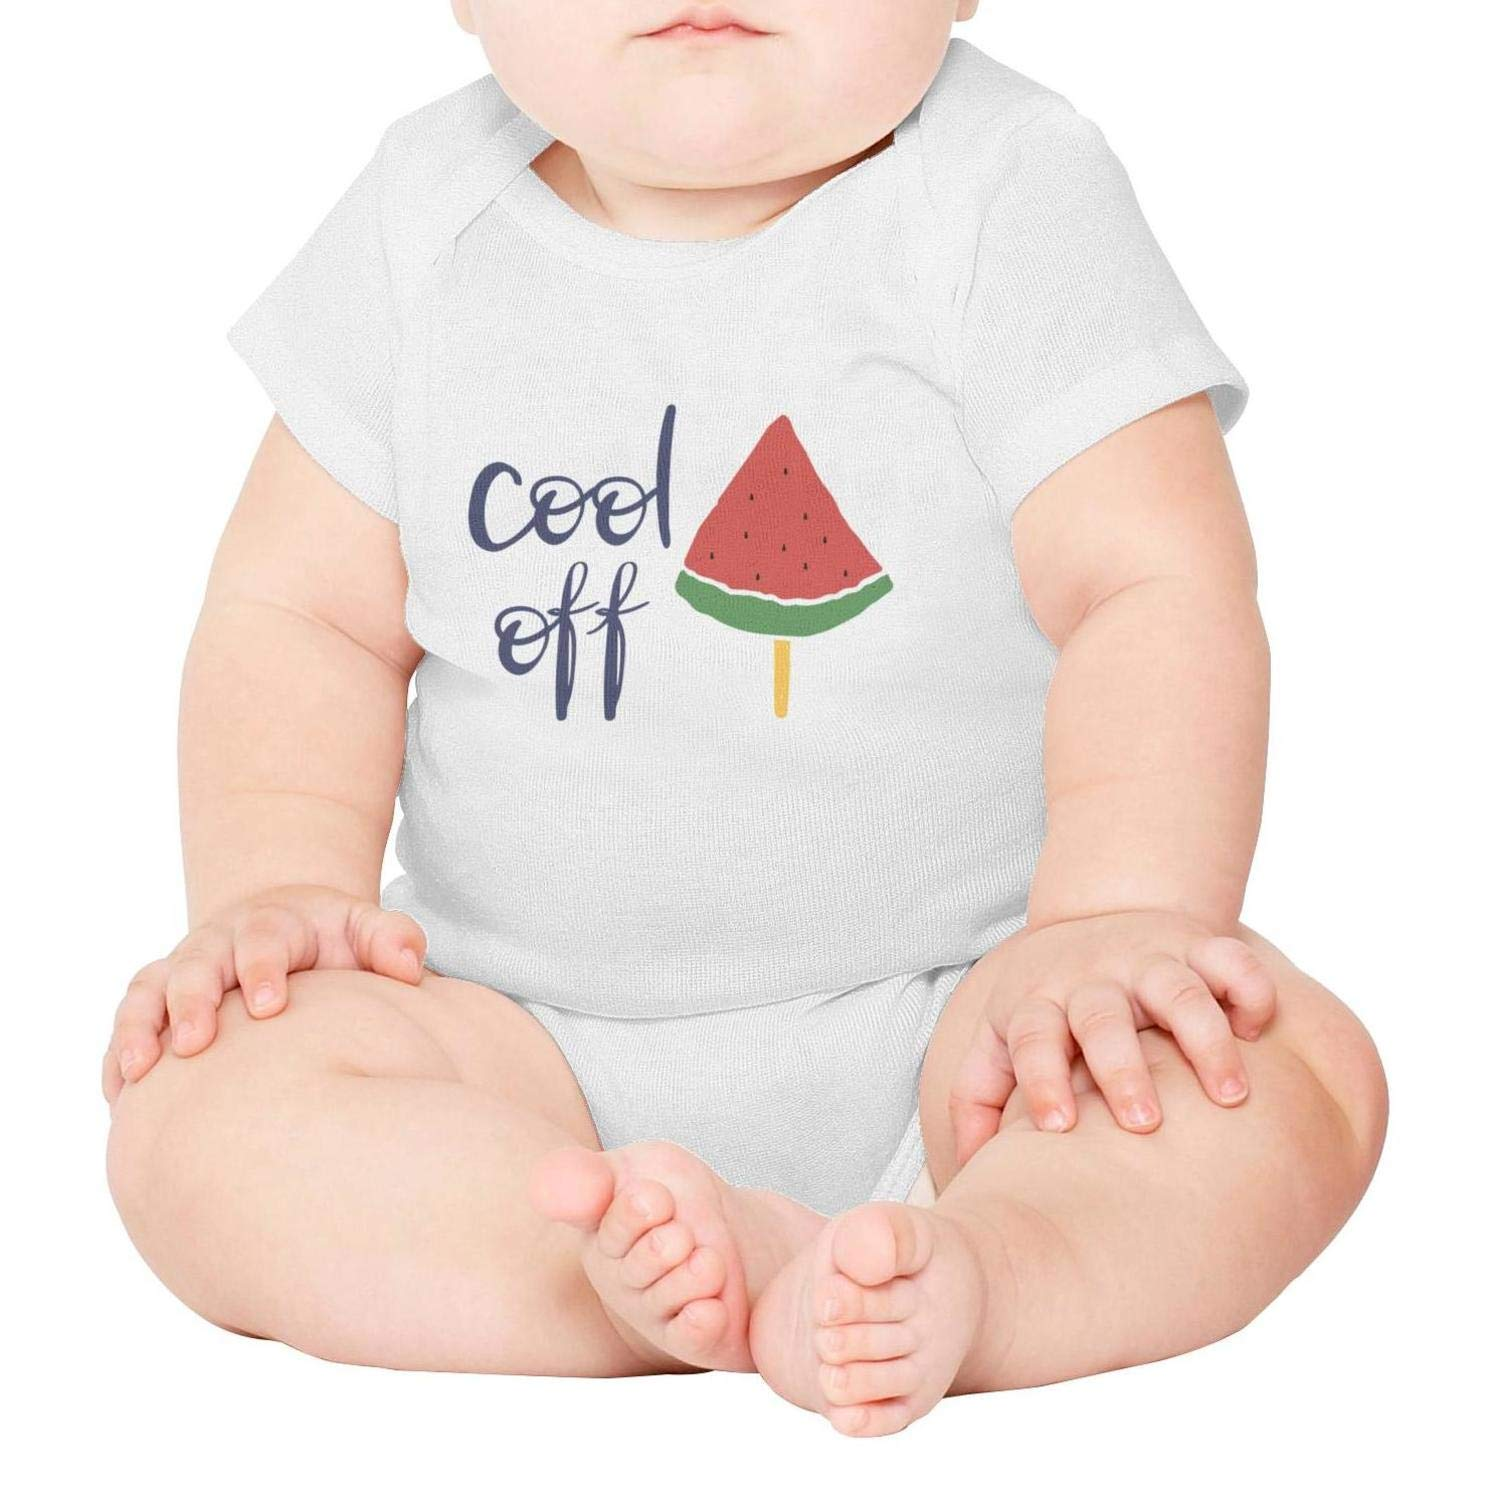 National ice Cream Day Watermelon on a stic Short Sleeve Natural Organic Baby Onesie Romper Cotton 100/% for Infant Boys Girls